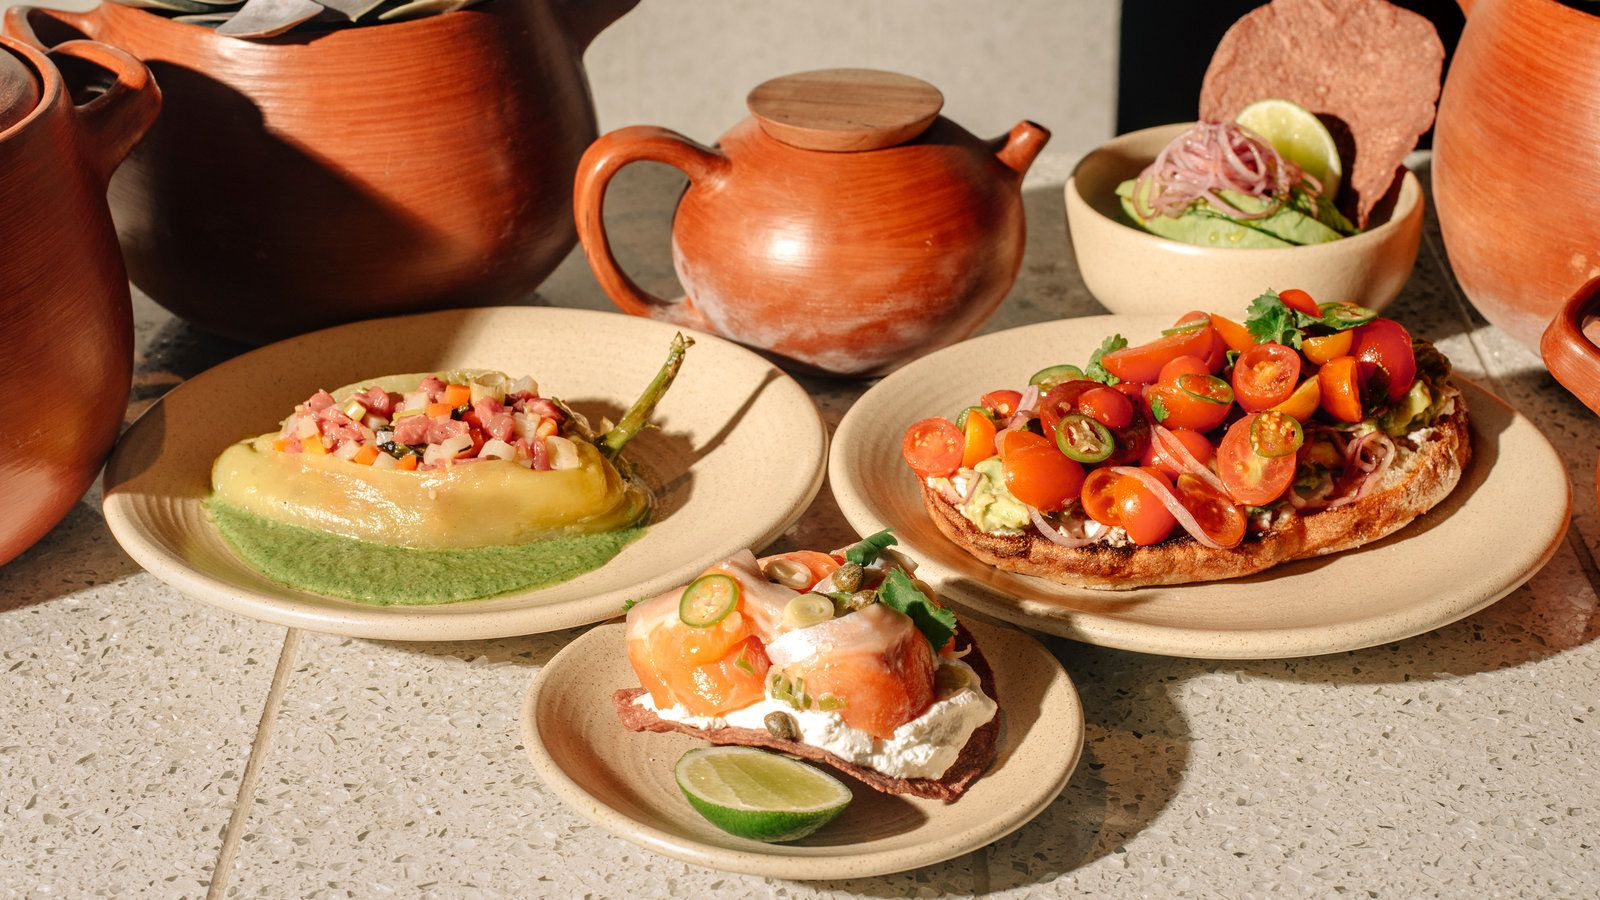 Stage Cuisine Mexican Cuisine Has Made The Leap To The Global Stage Of Fine